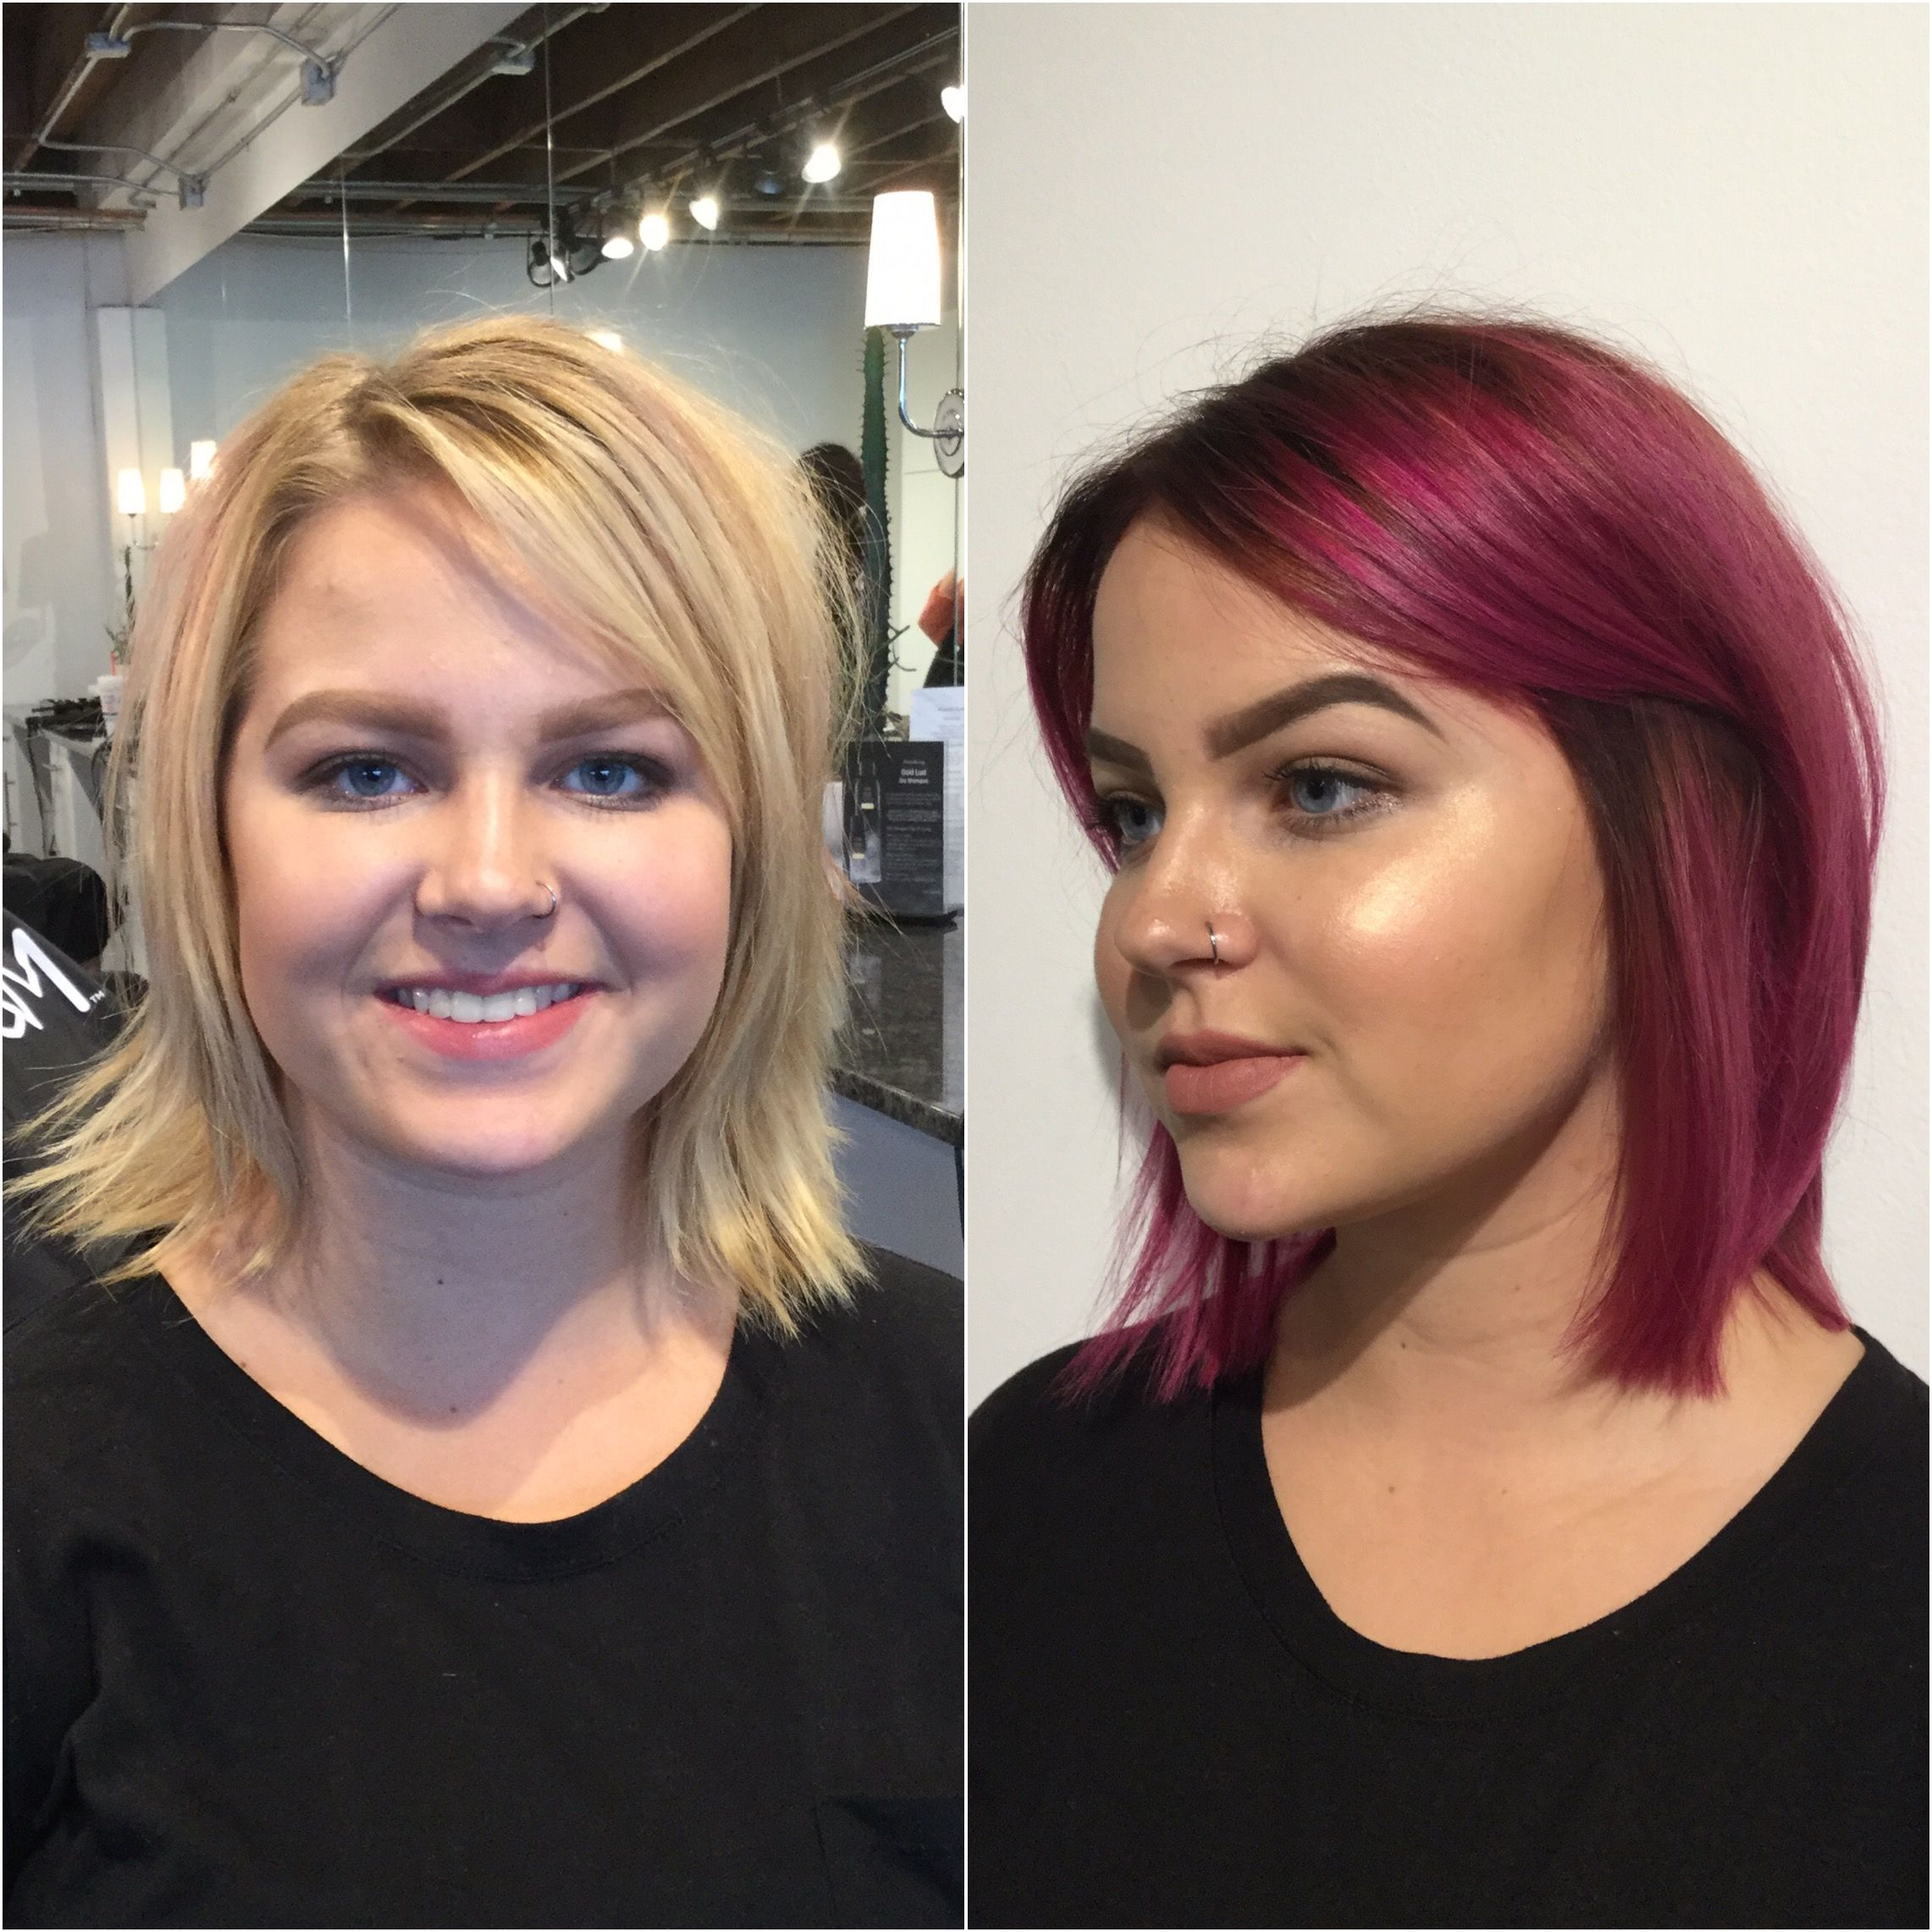 Before And After Hair Color Transformation Blonde To Pink Hair Pink Hair Color Pink Hair Dye Hair Color Pink Dyed Blonde Hair